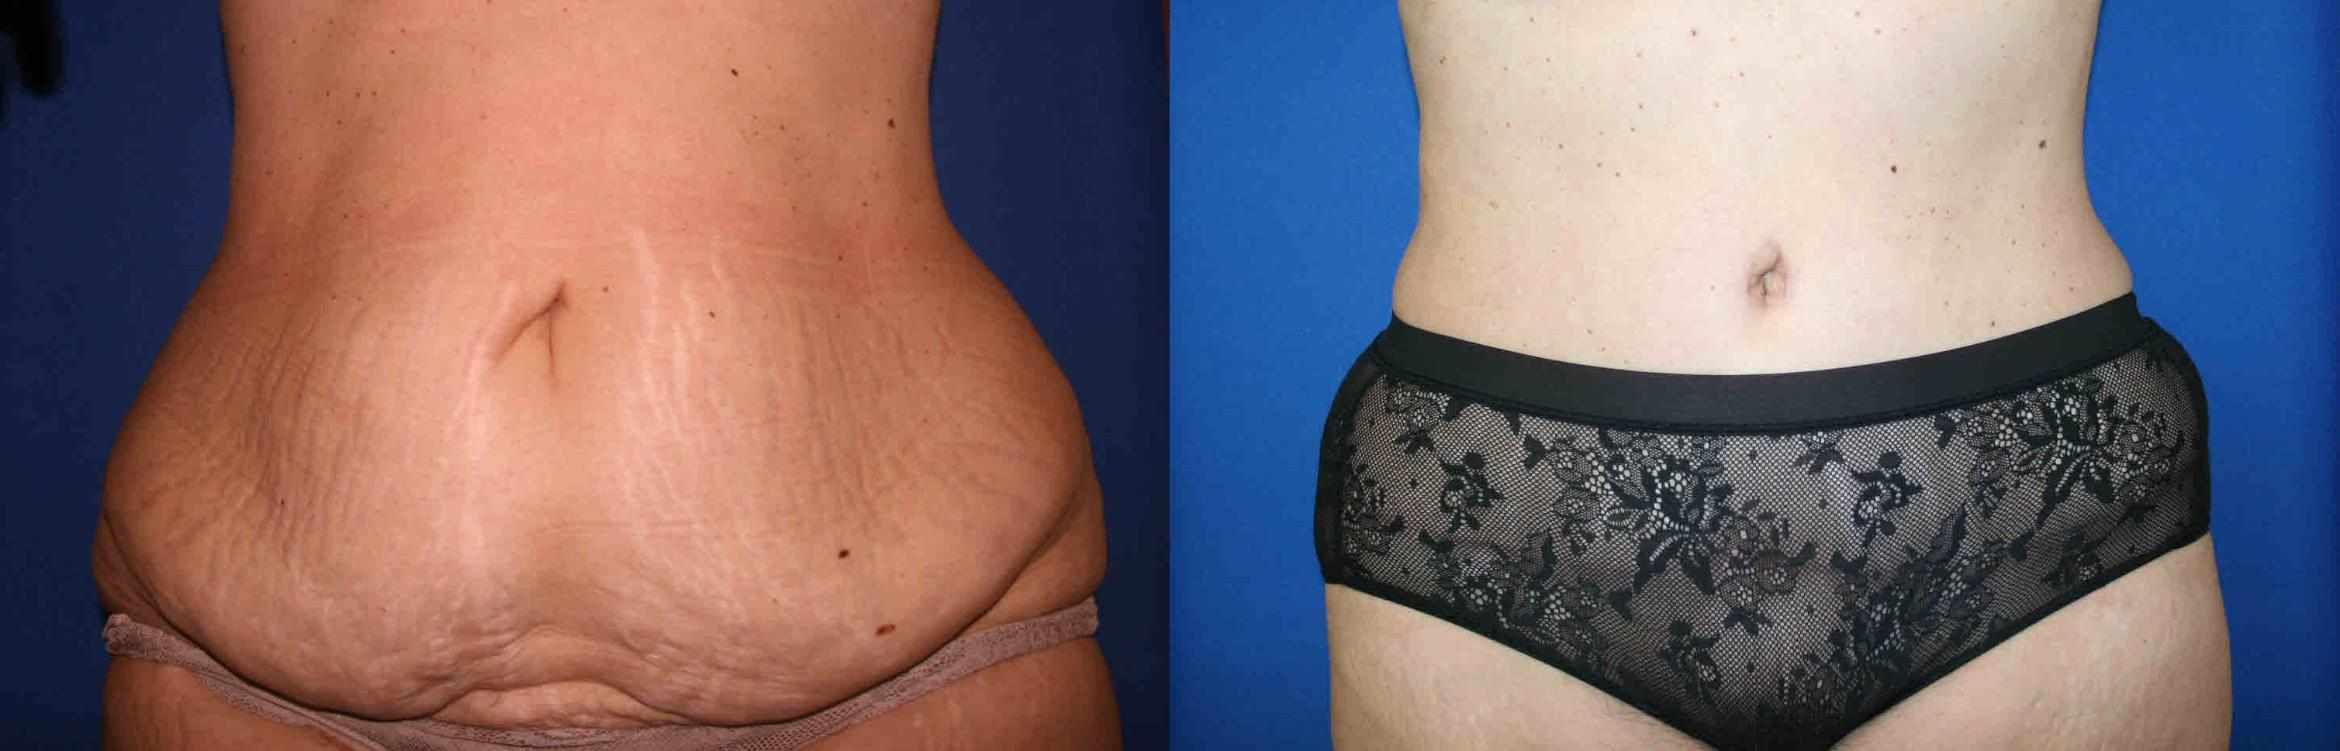 Tummy Tuck Case 39 Before & After View #1 | San Jose & Palo Alto, CA | Daryl K. Hoffman, MD